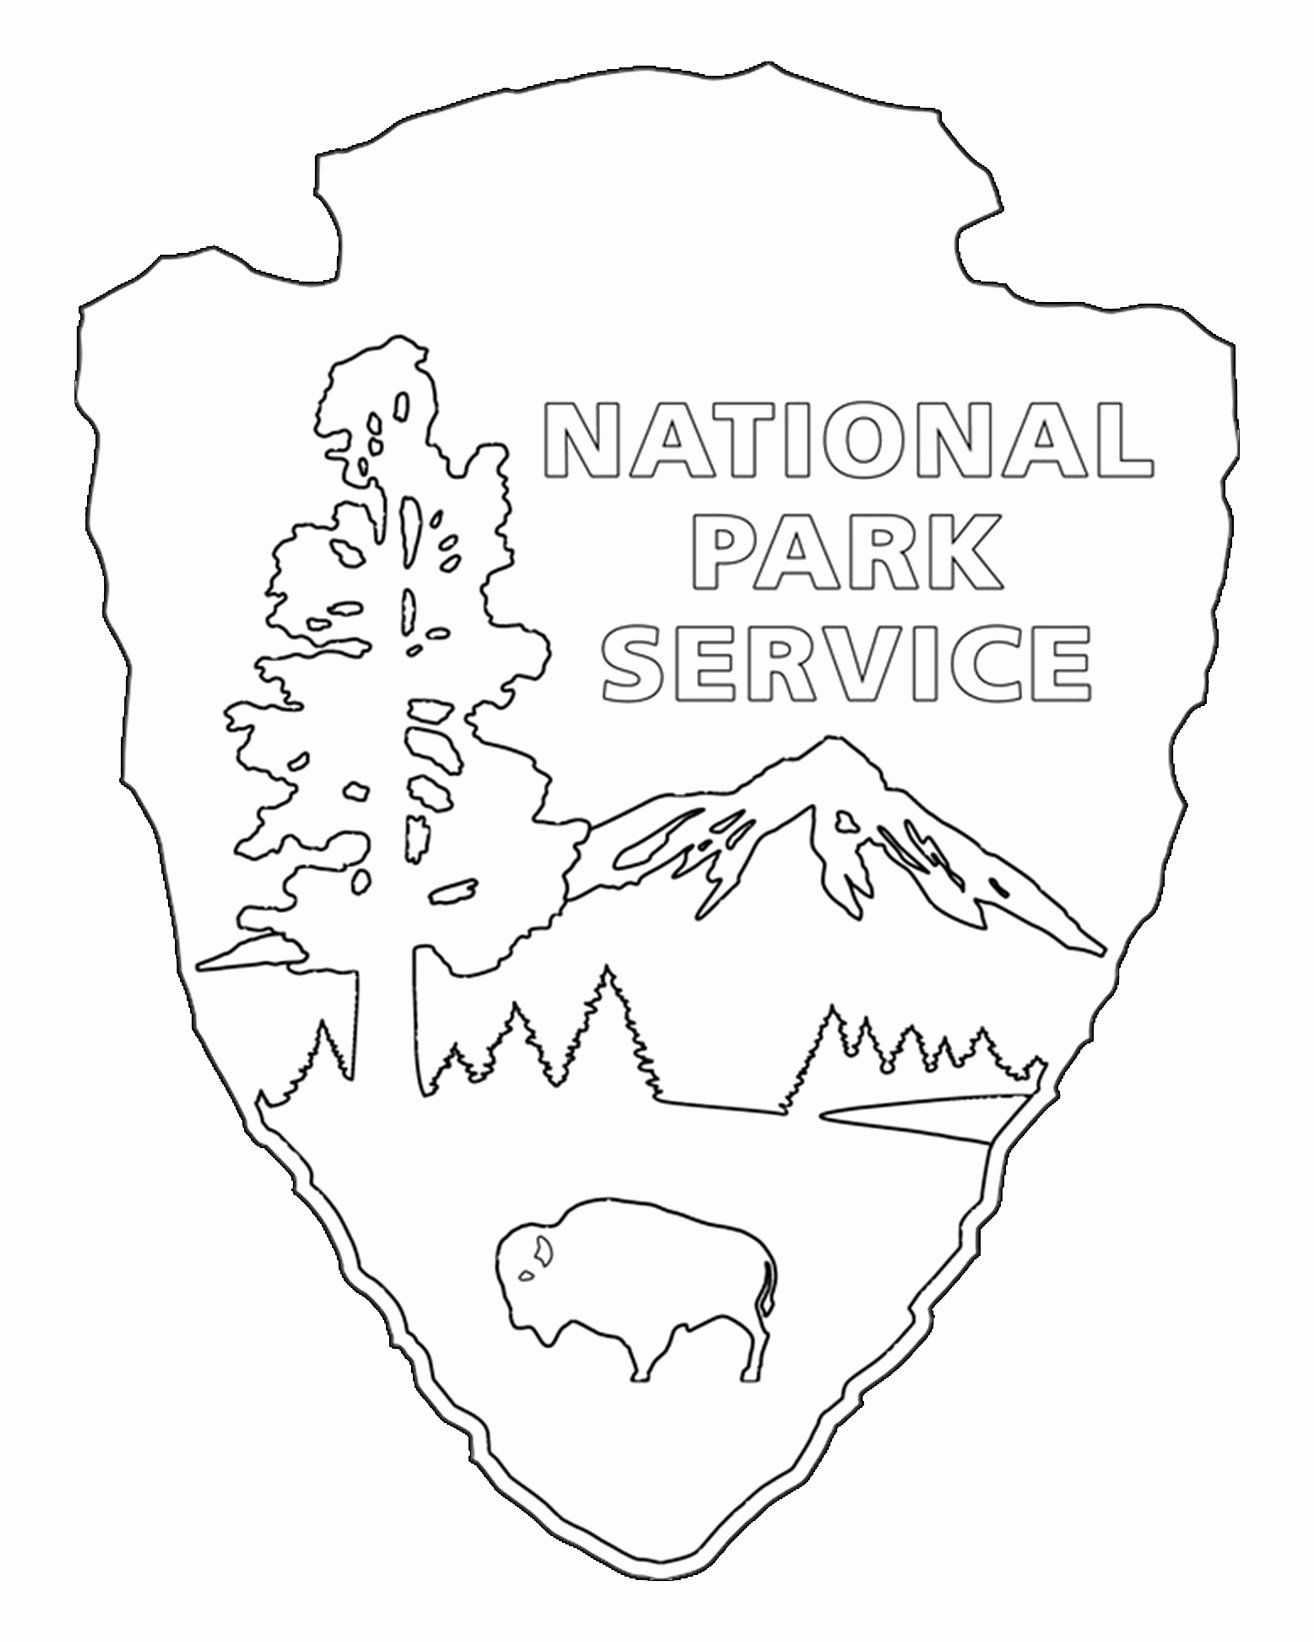 24 National Parks Coloring Book In 2020 Coloring Pages Coloring